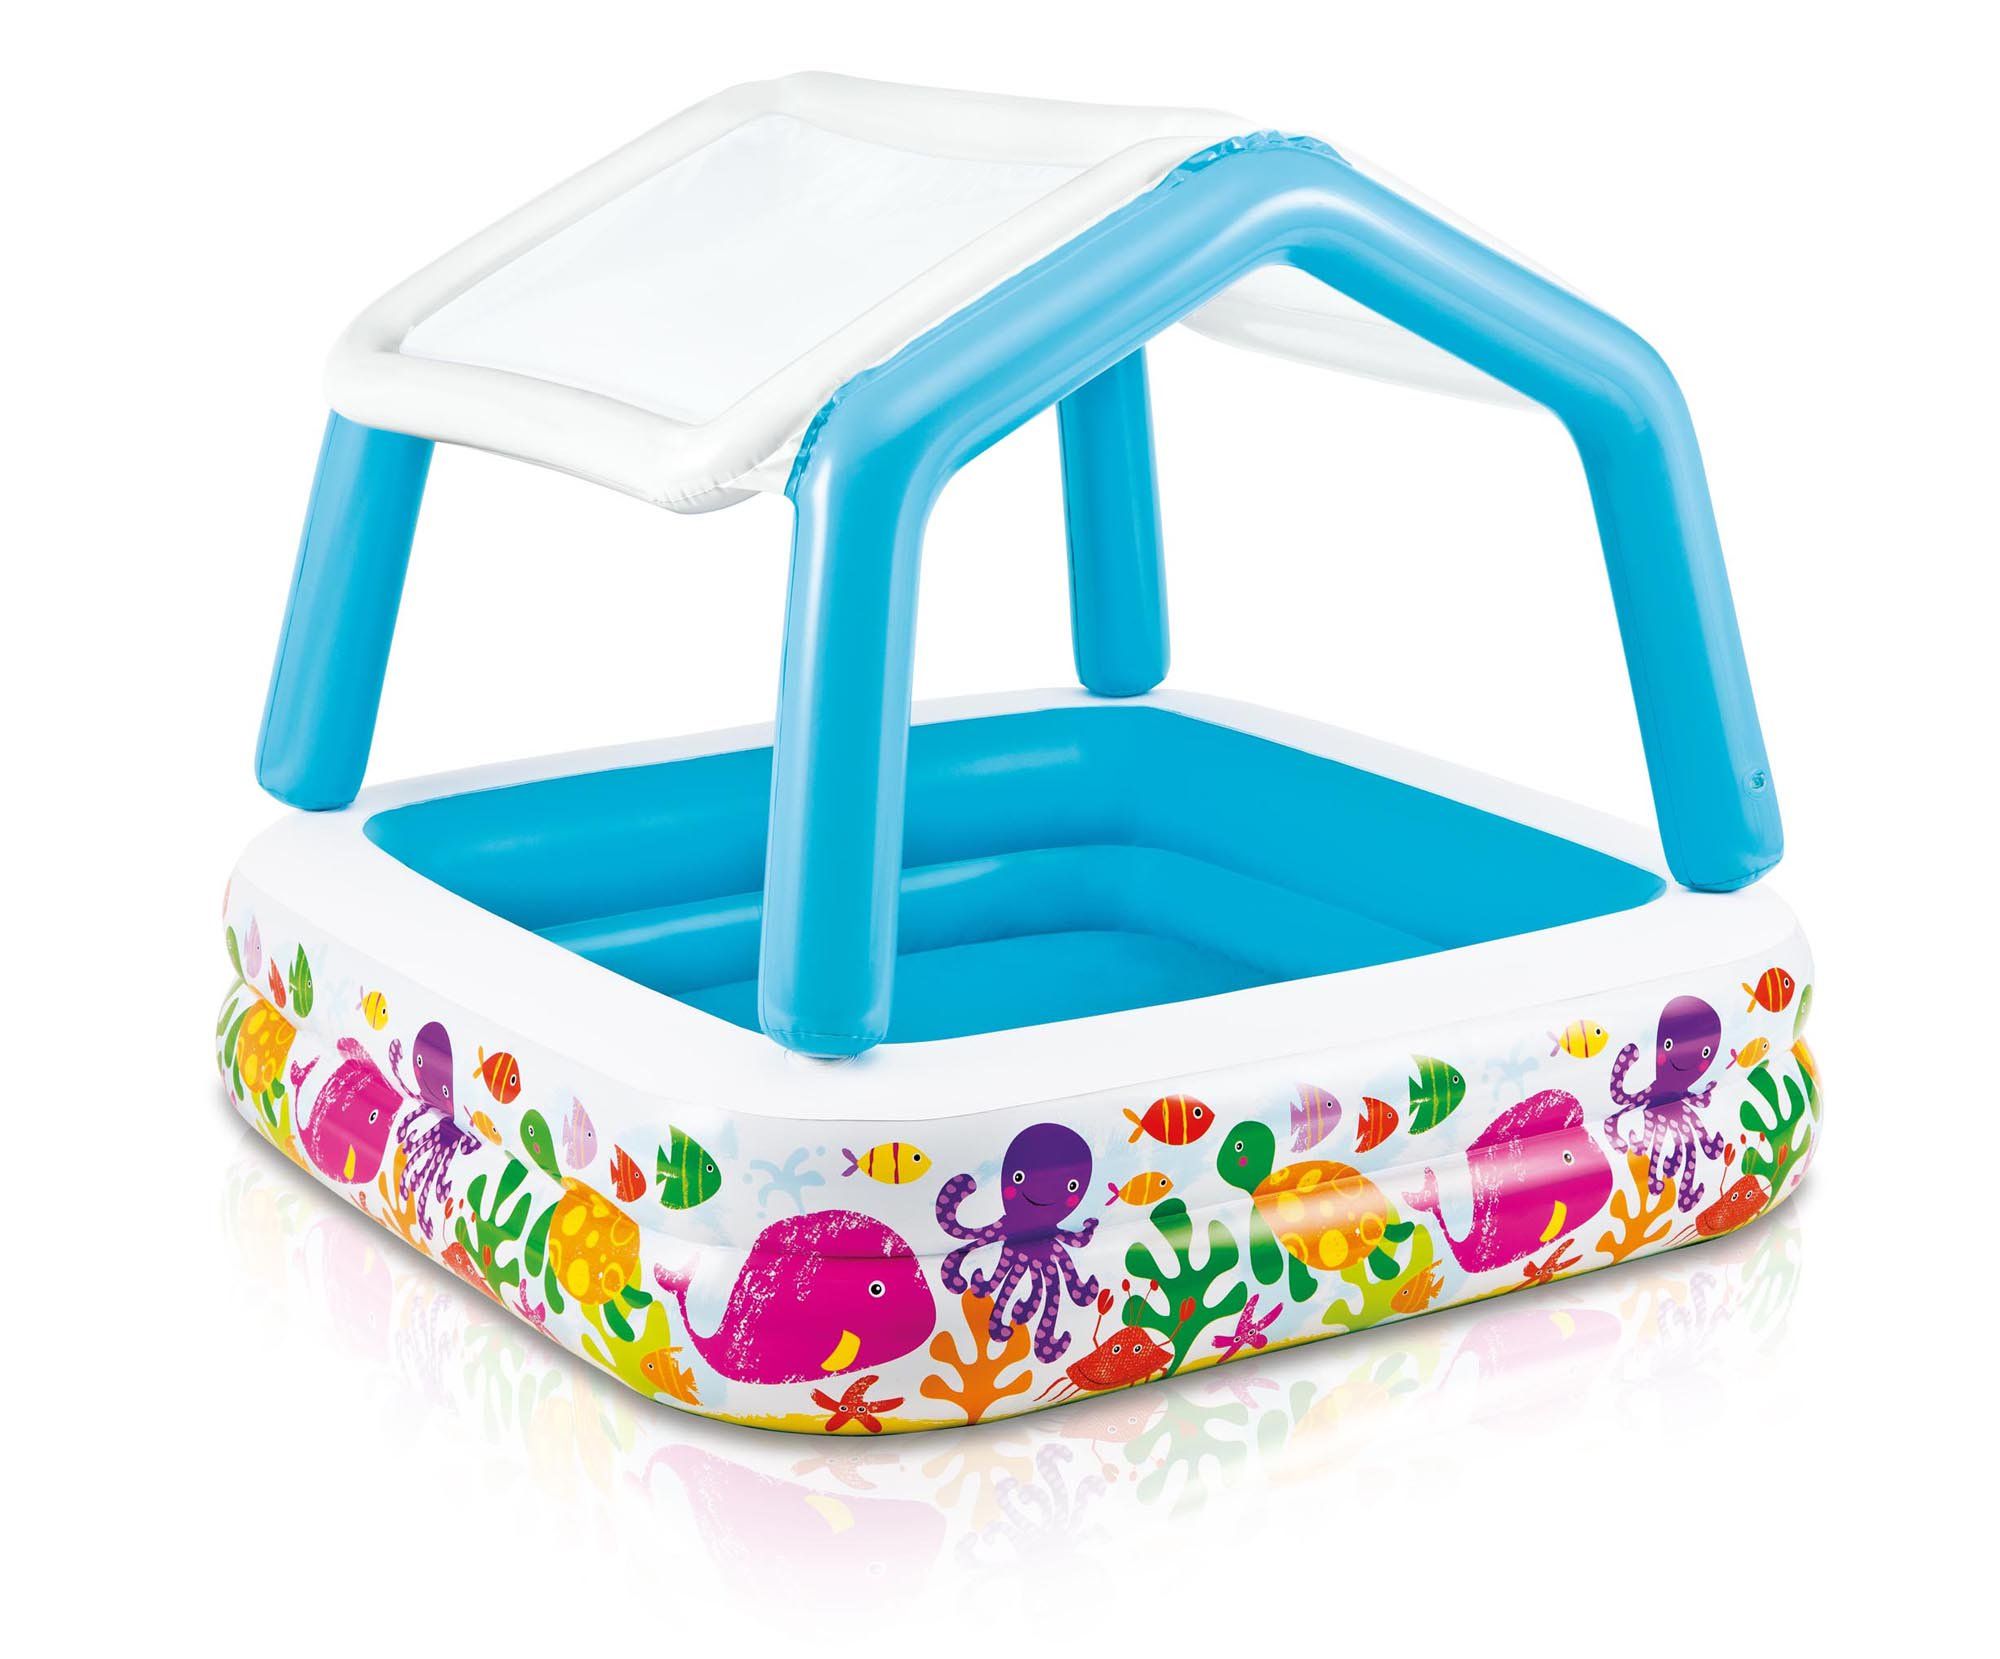 Intex Inflatable Ocean Scene Sun Shade Kids Swimming Pool With Canopy | 57470EP by Intex